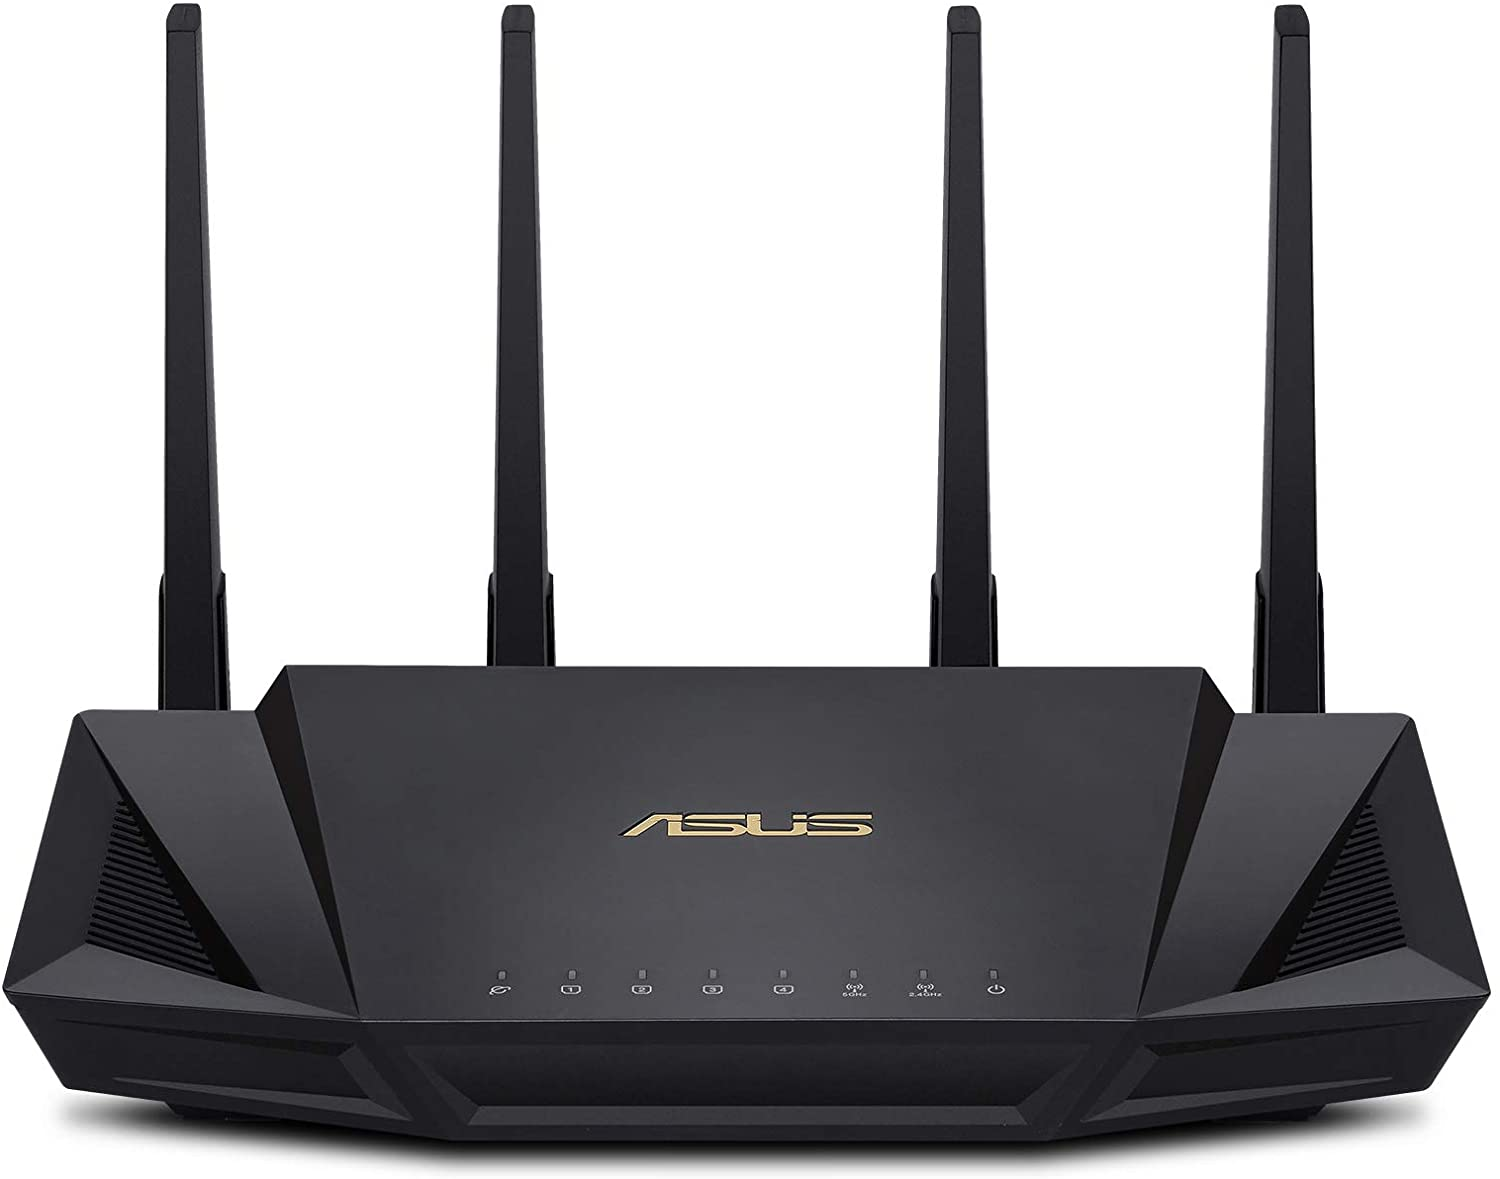 ASUS WiFi 6 Router (RT-AX3000)